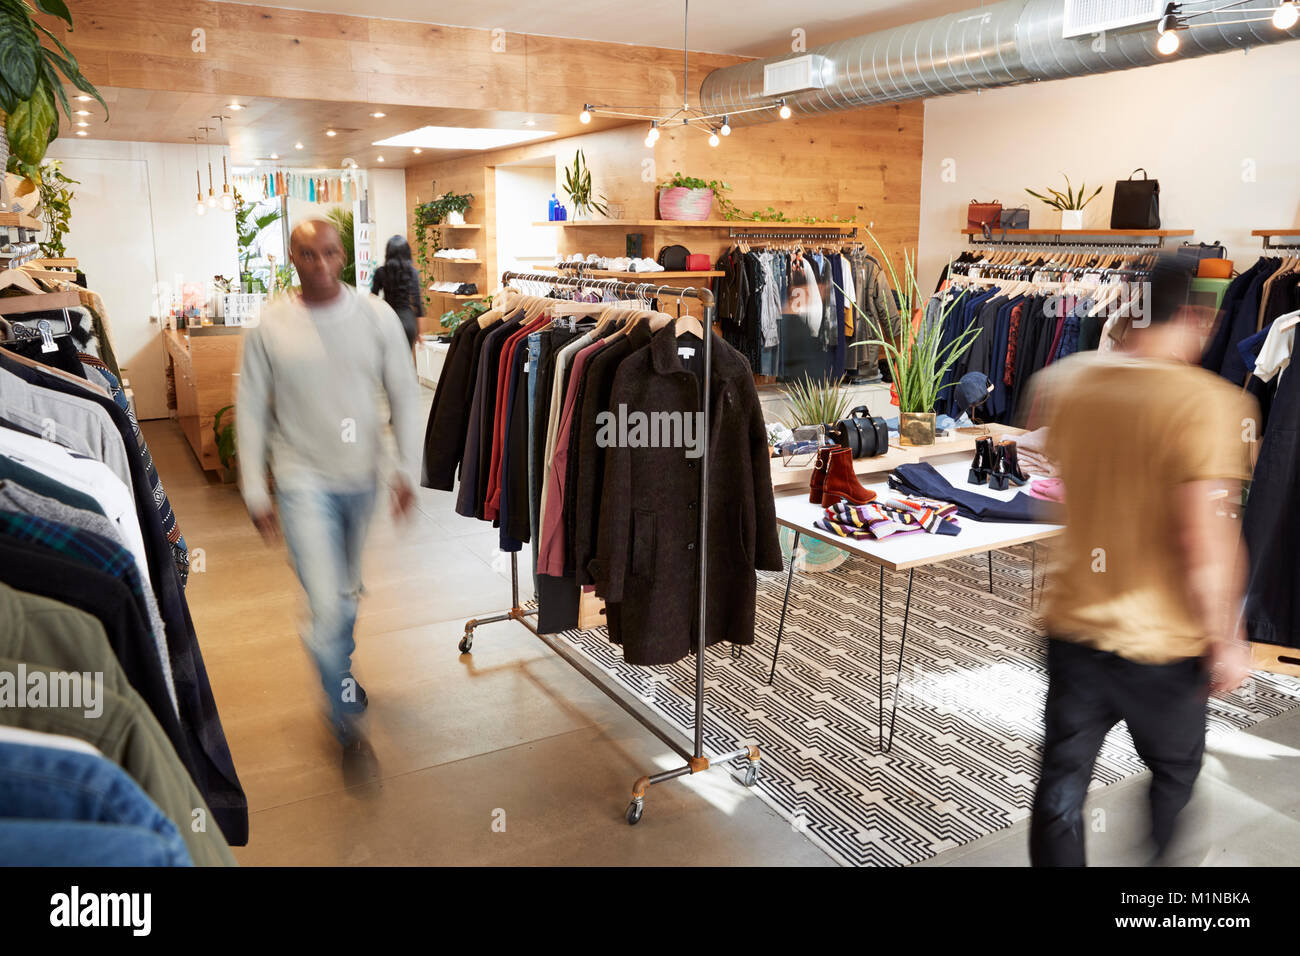 People walking through a busy clothes shop, motion blur - Stock Image